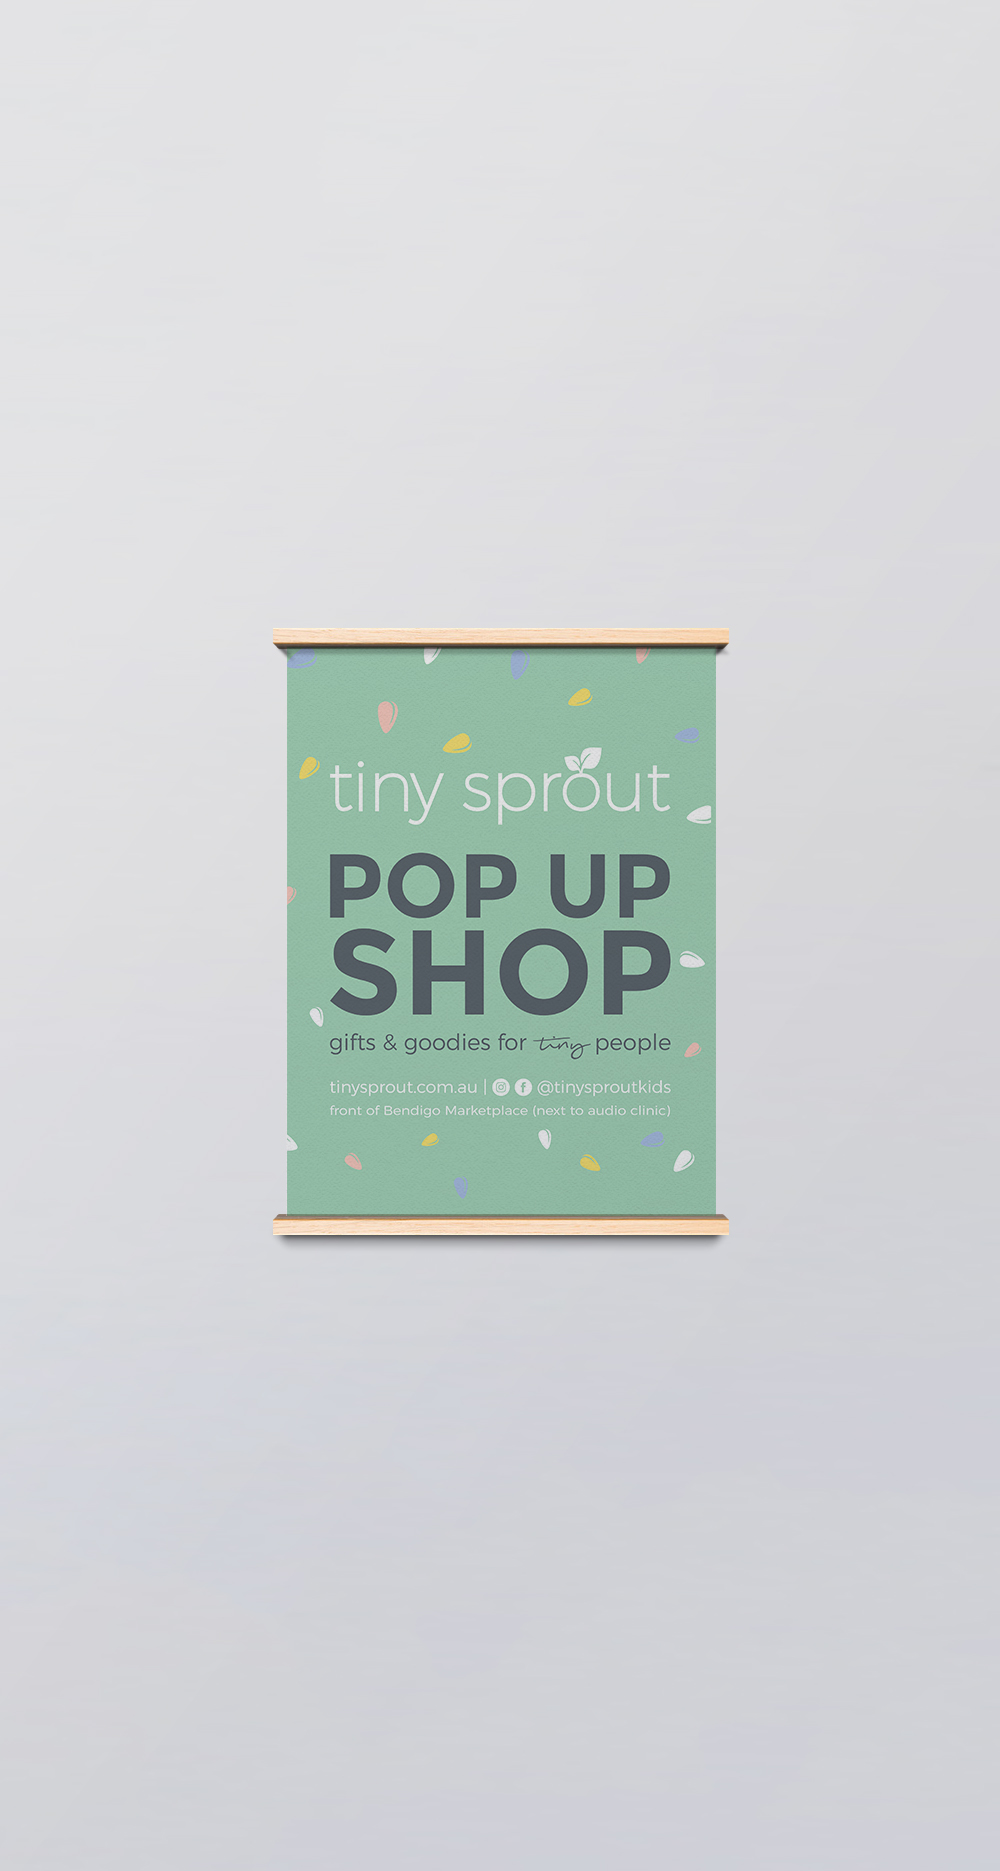 Tiny Srpout poster